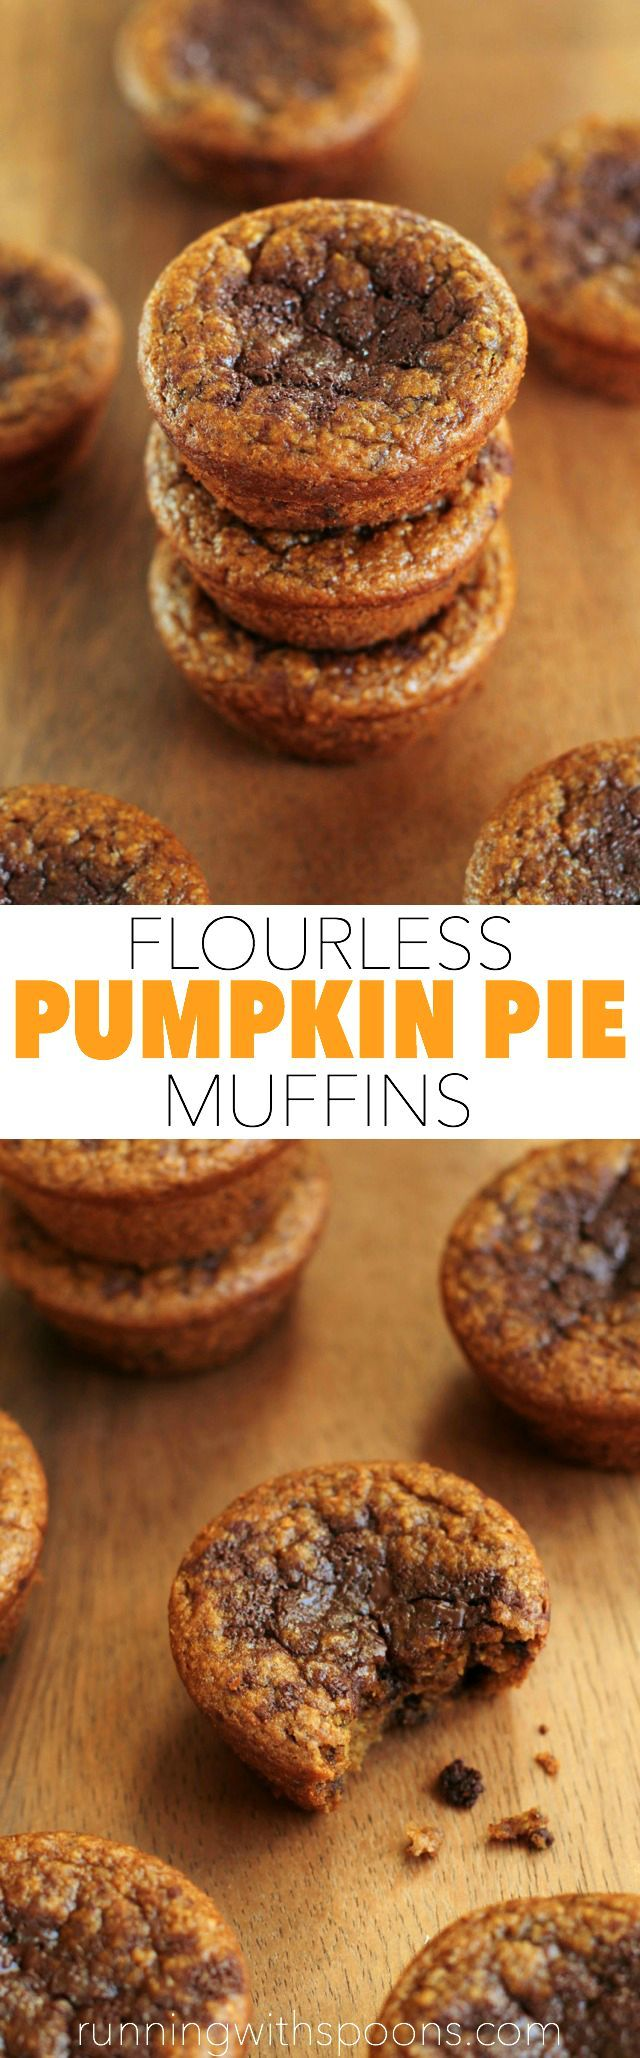 Flourless Pumpkin Pie Muffins - You won't miss the flour, oil, or sugar in these soft and tender muffins!